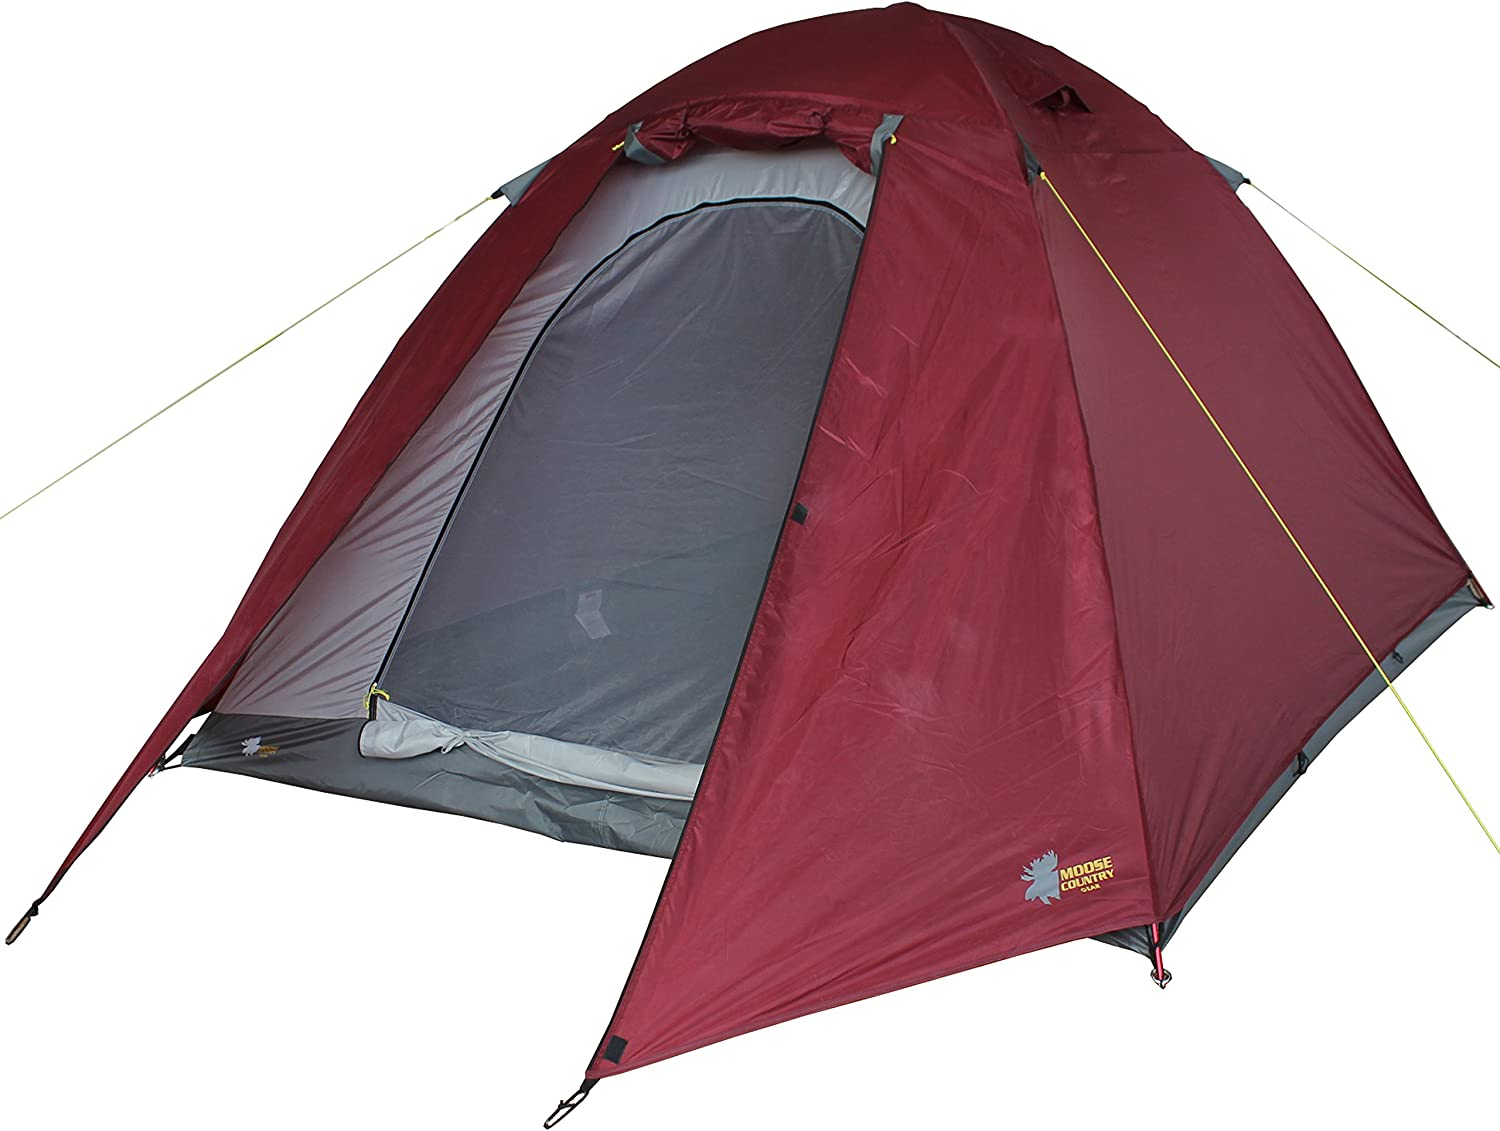 Moose Racing Backpacking Tents- Best 4 Season Insulated Tent